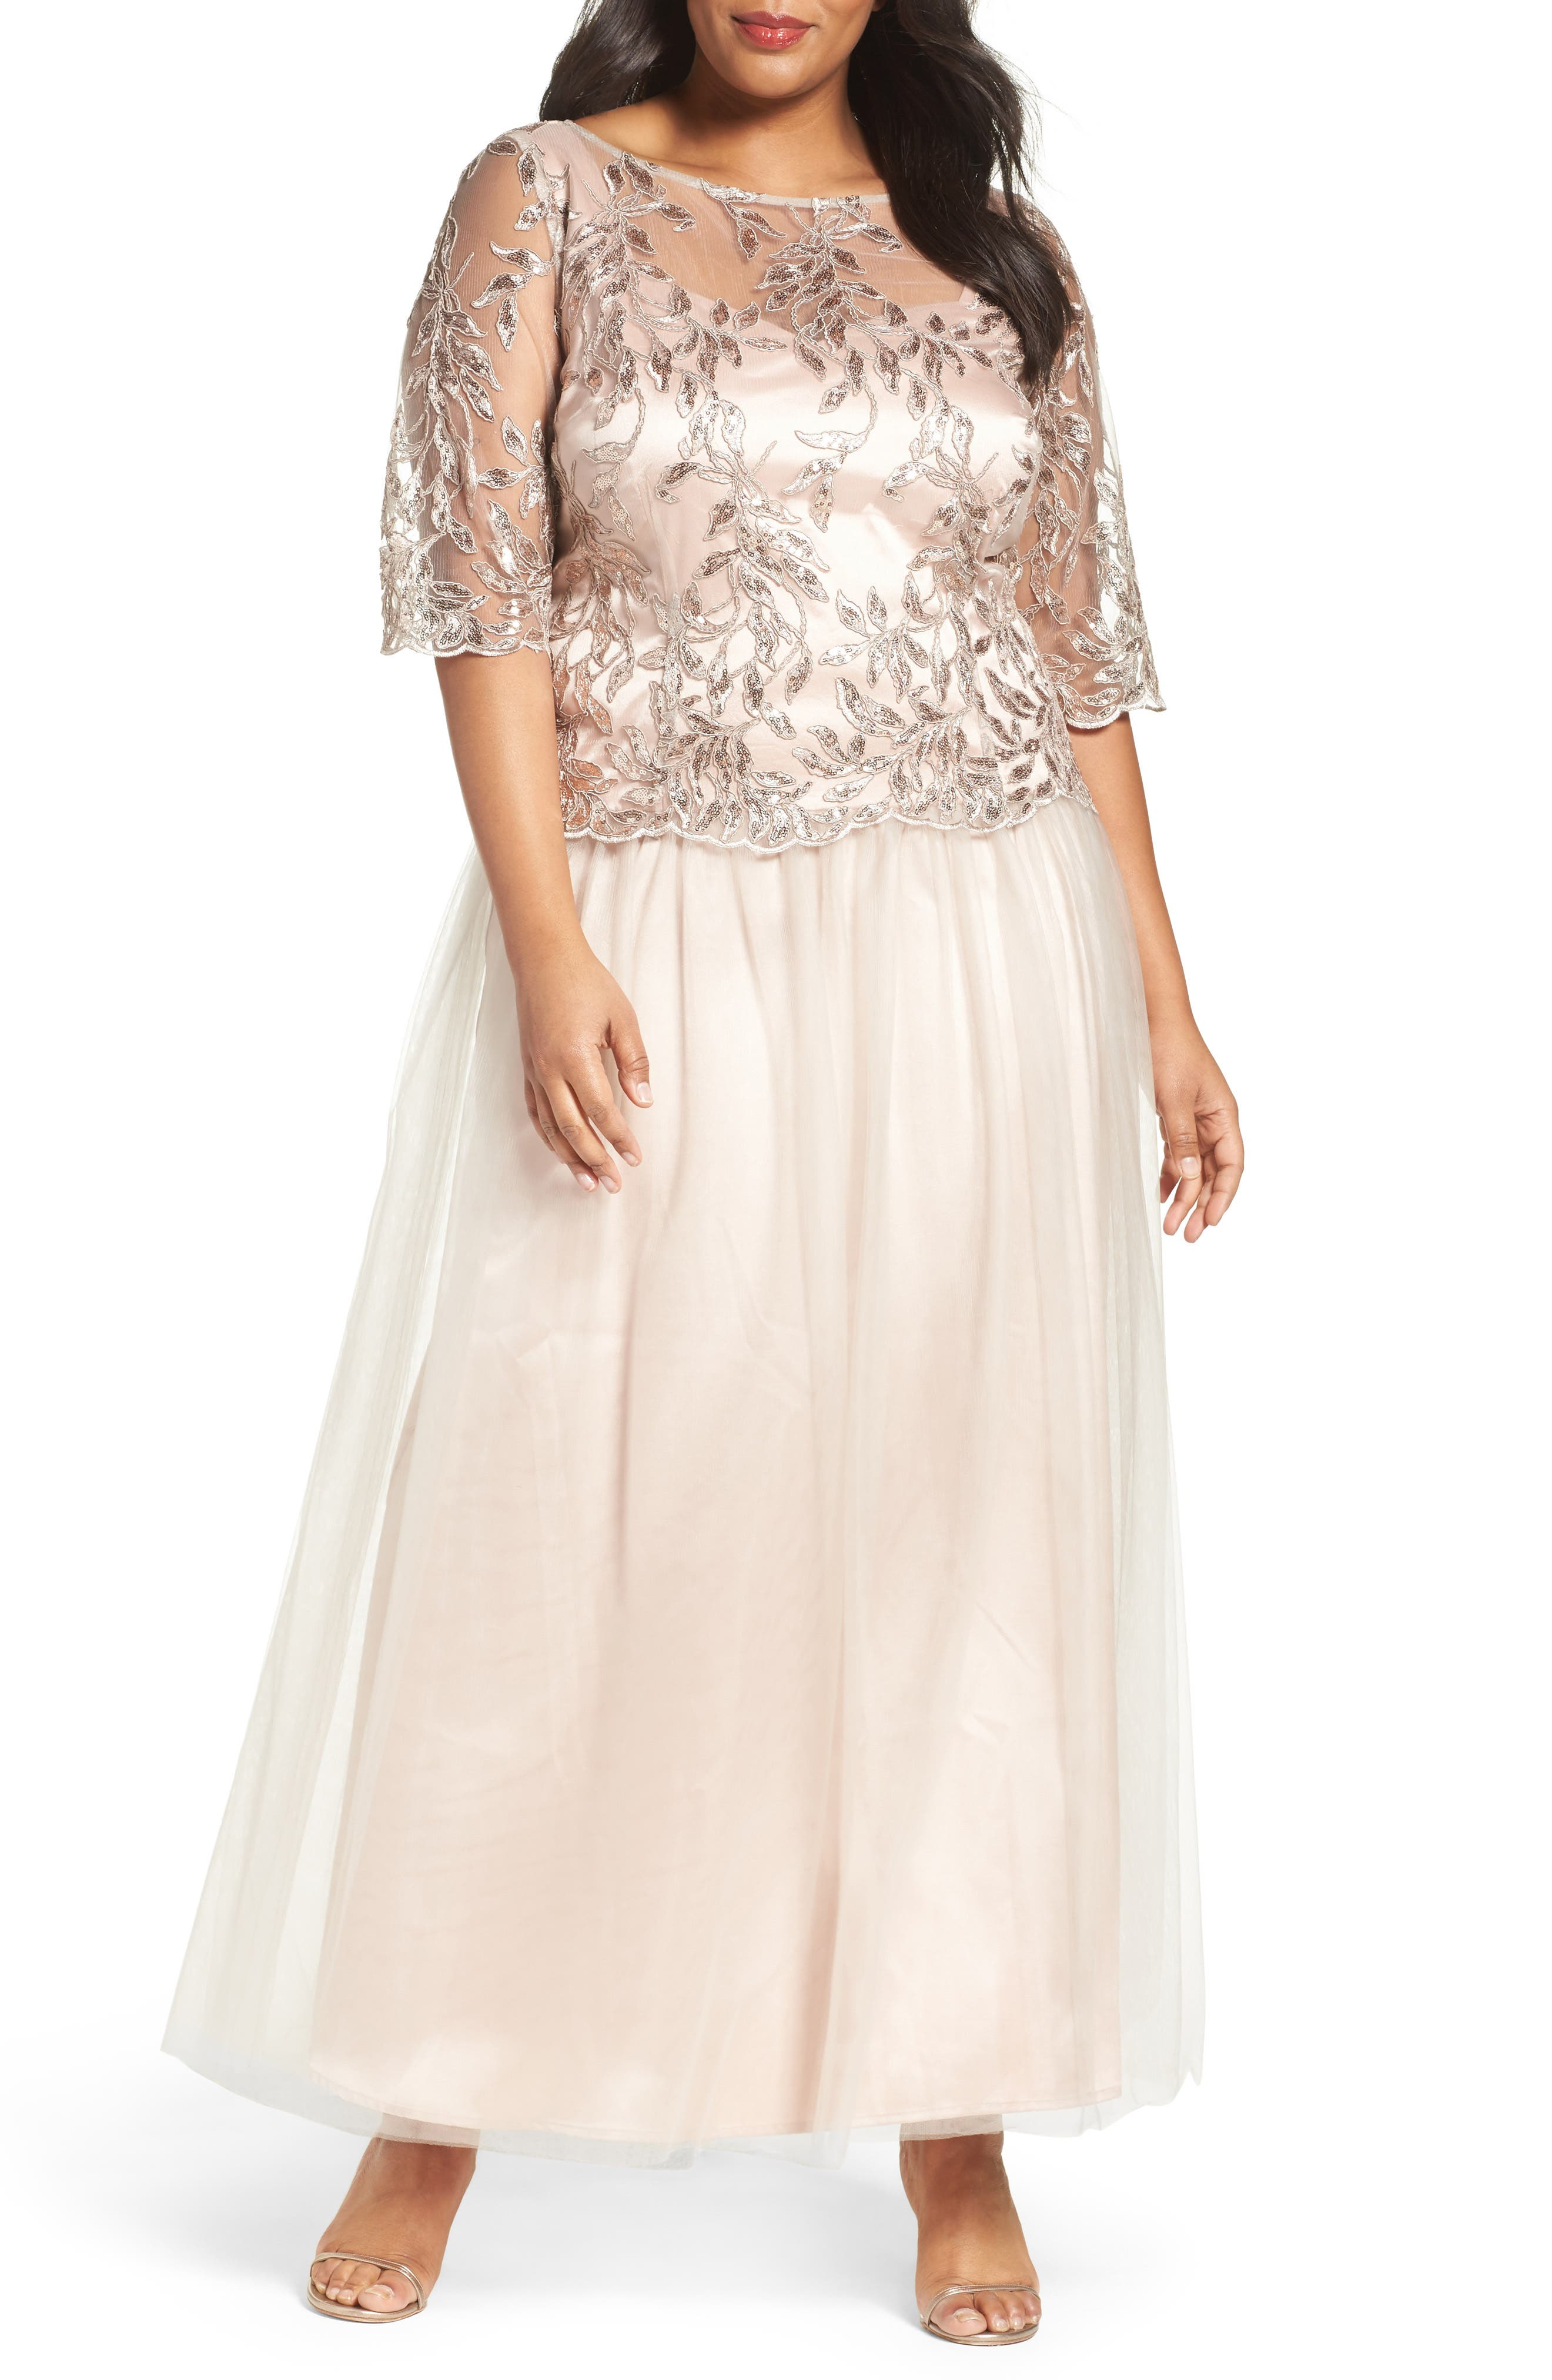 Alternate Image 1 Selected - Brianna Embellished Mesh Gown (Plus Size)